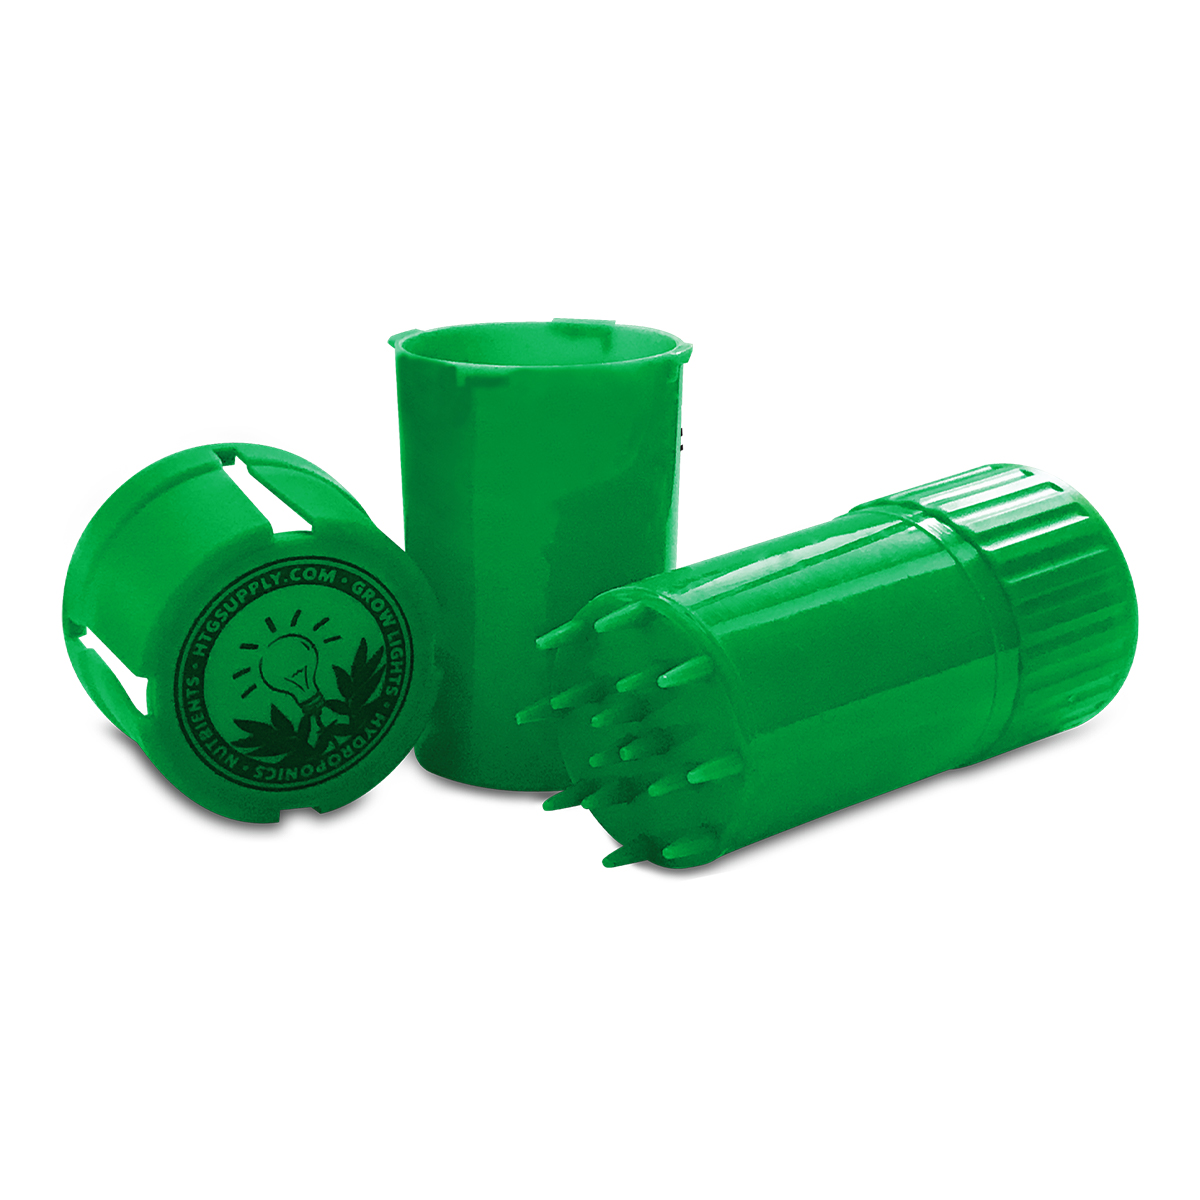 HTG Supply Plastic Herb Grinder